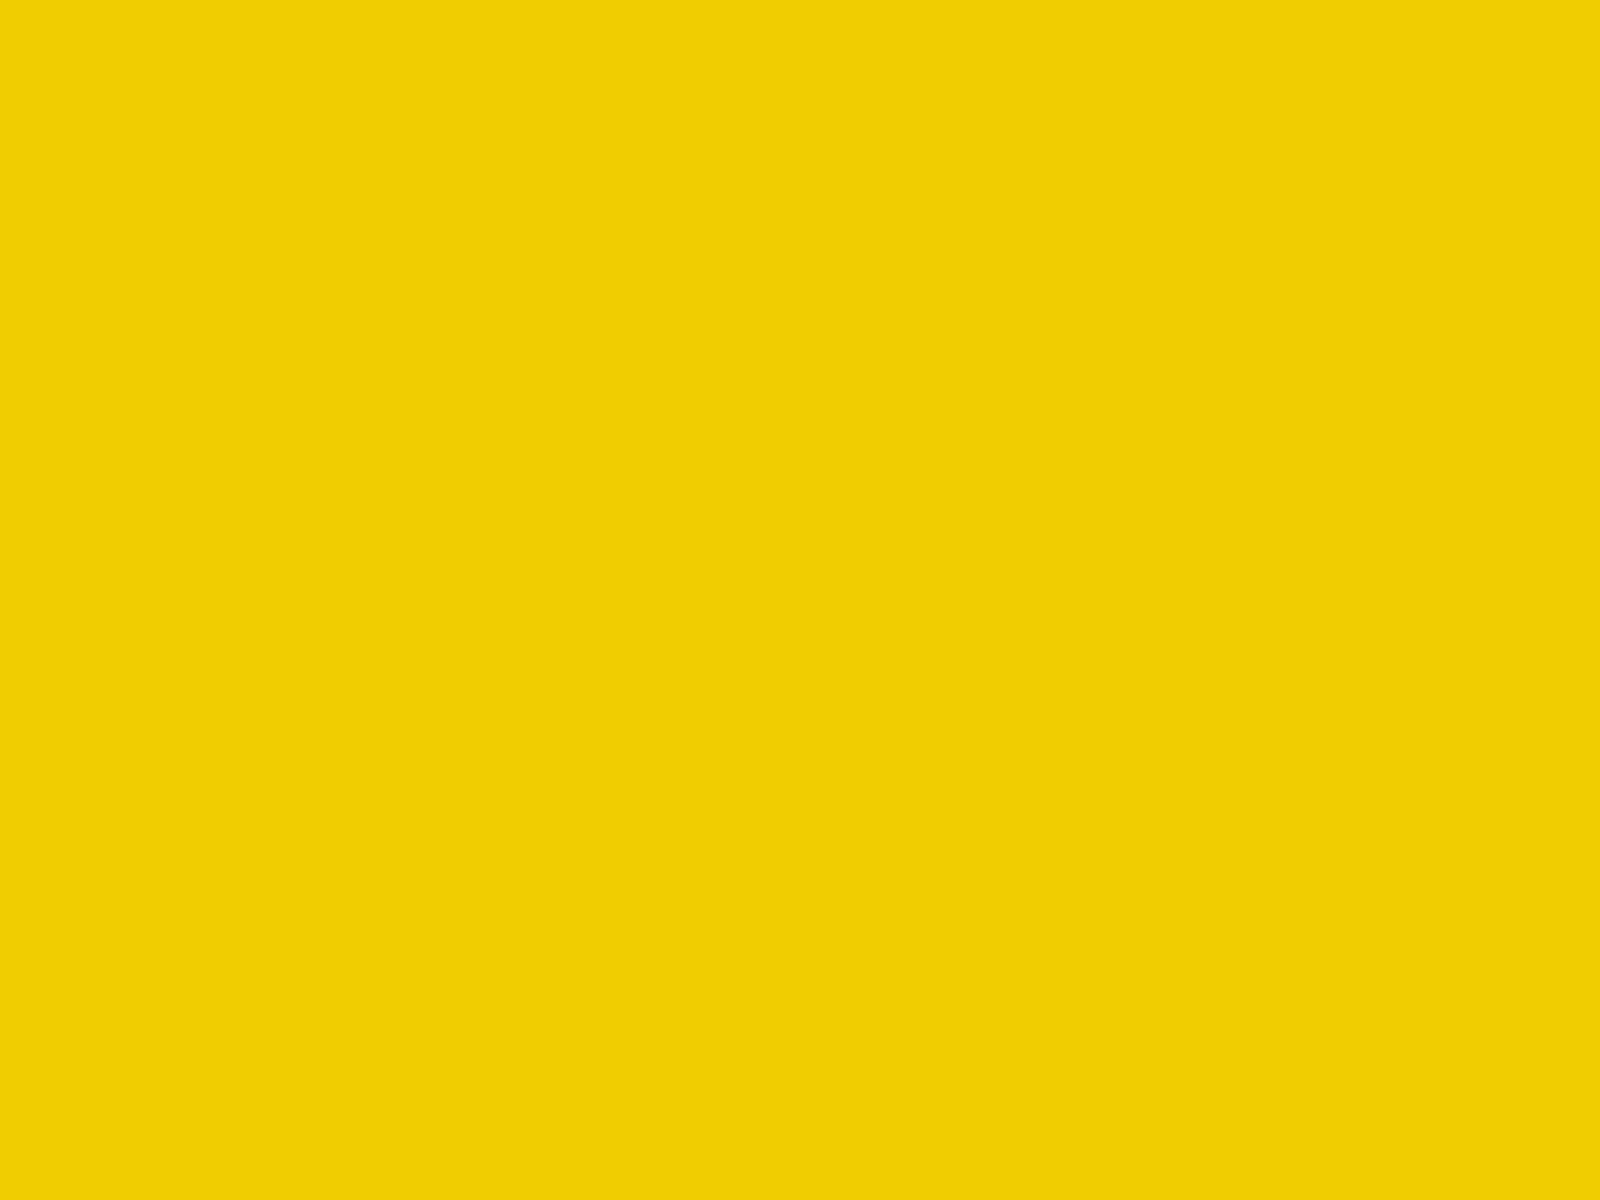 1600x1200 Yellow Munsell Solid Color Background